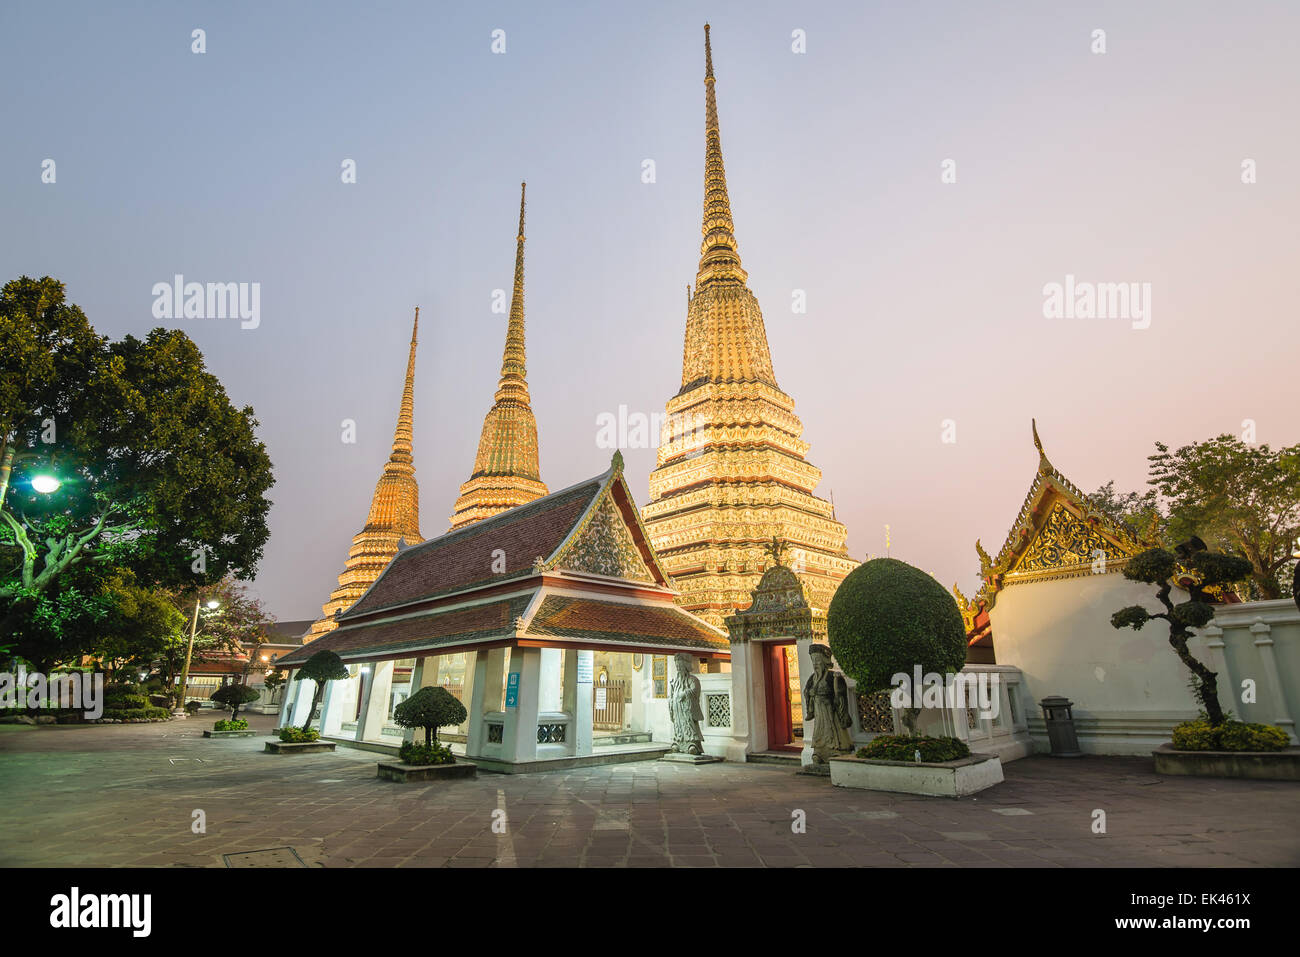 Wat Pho Temple at night of Bangkok, Thailand - Stock Image